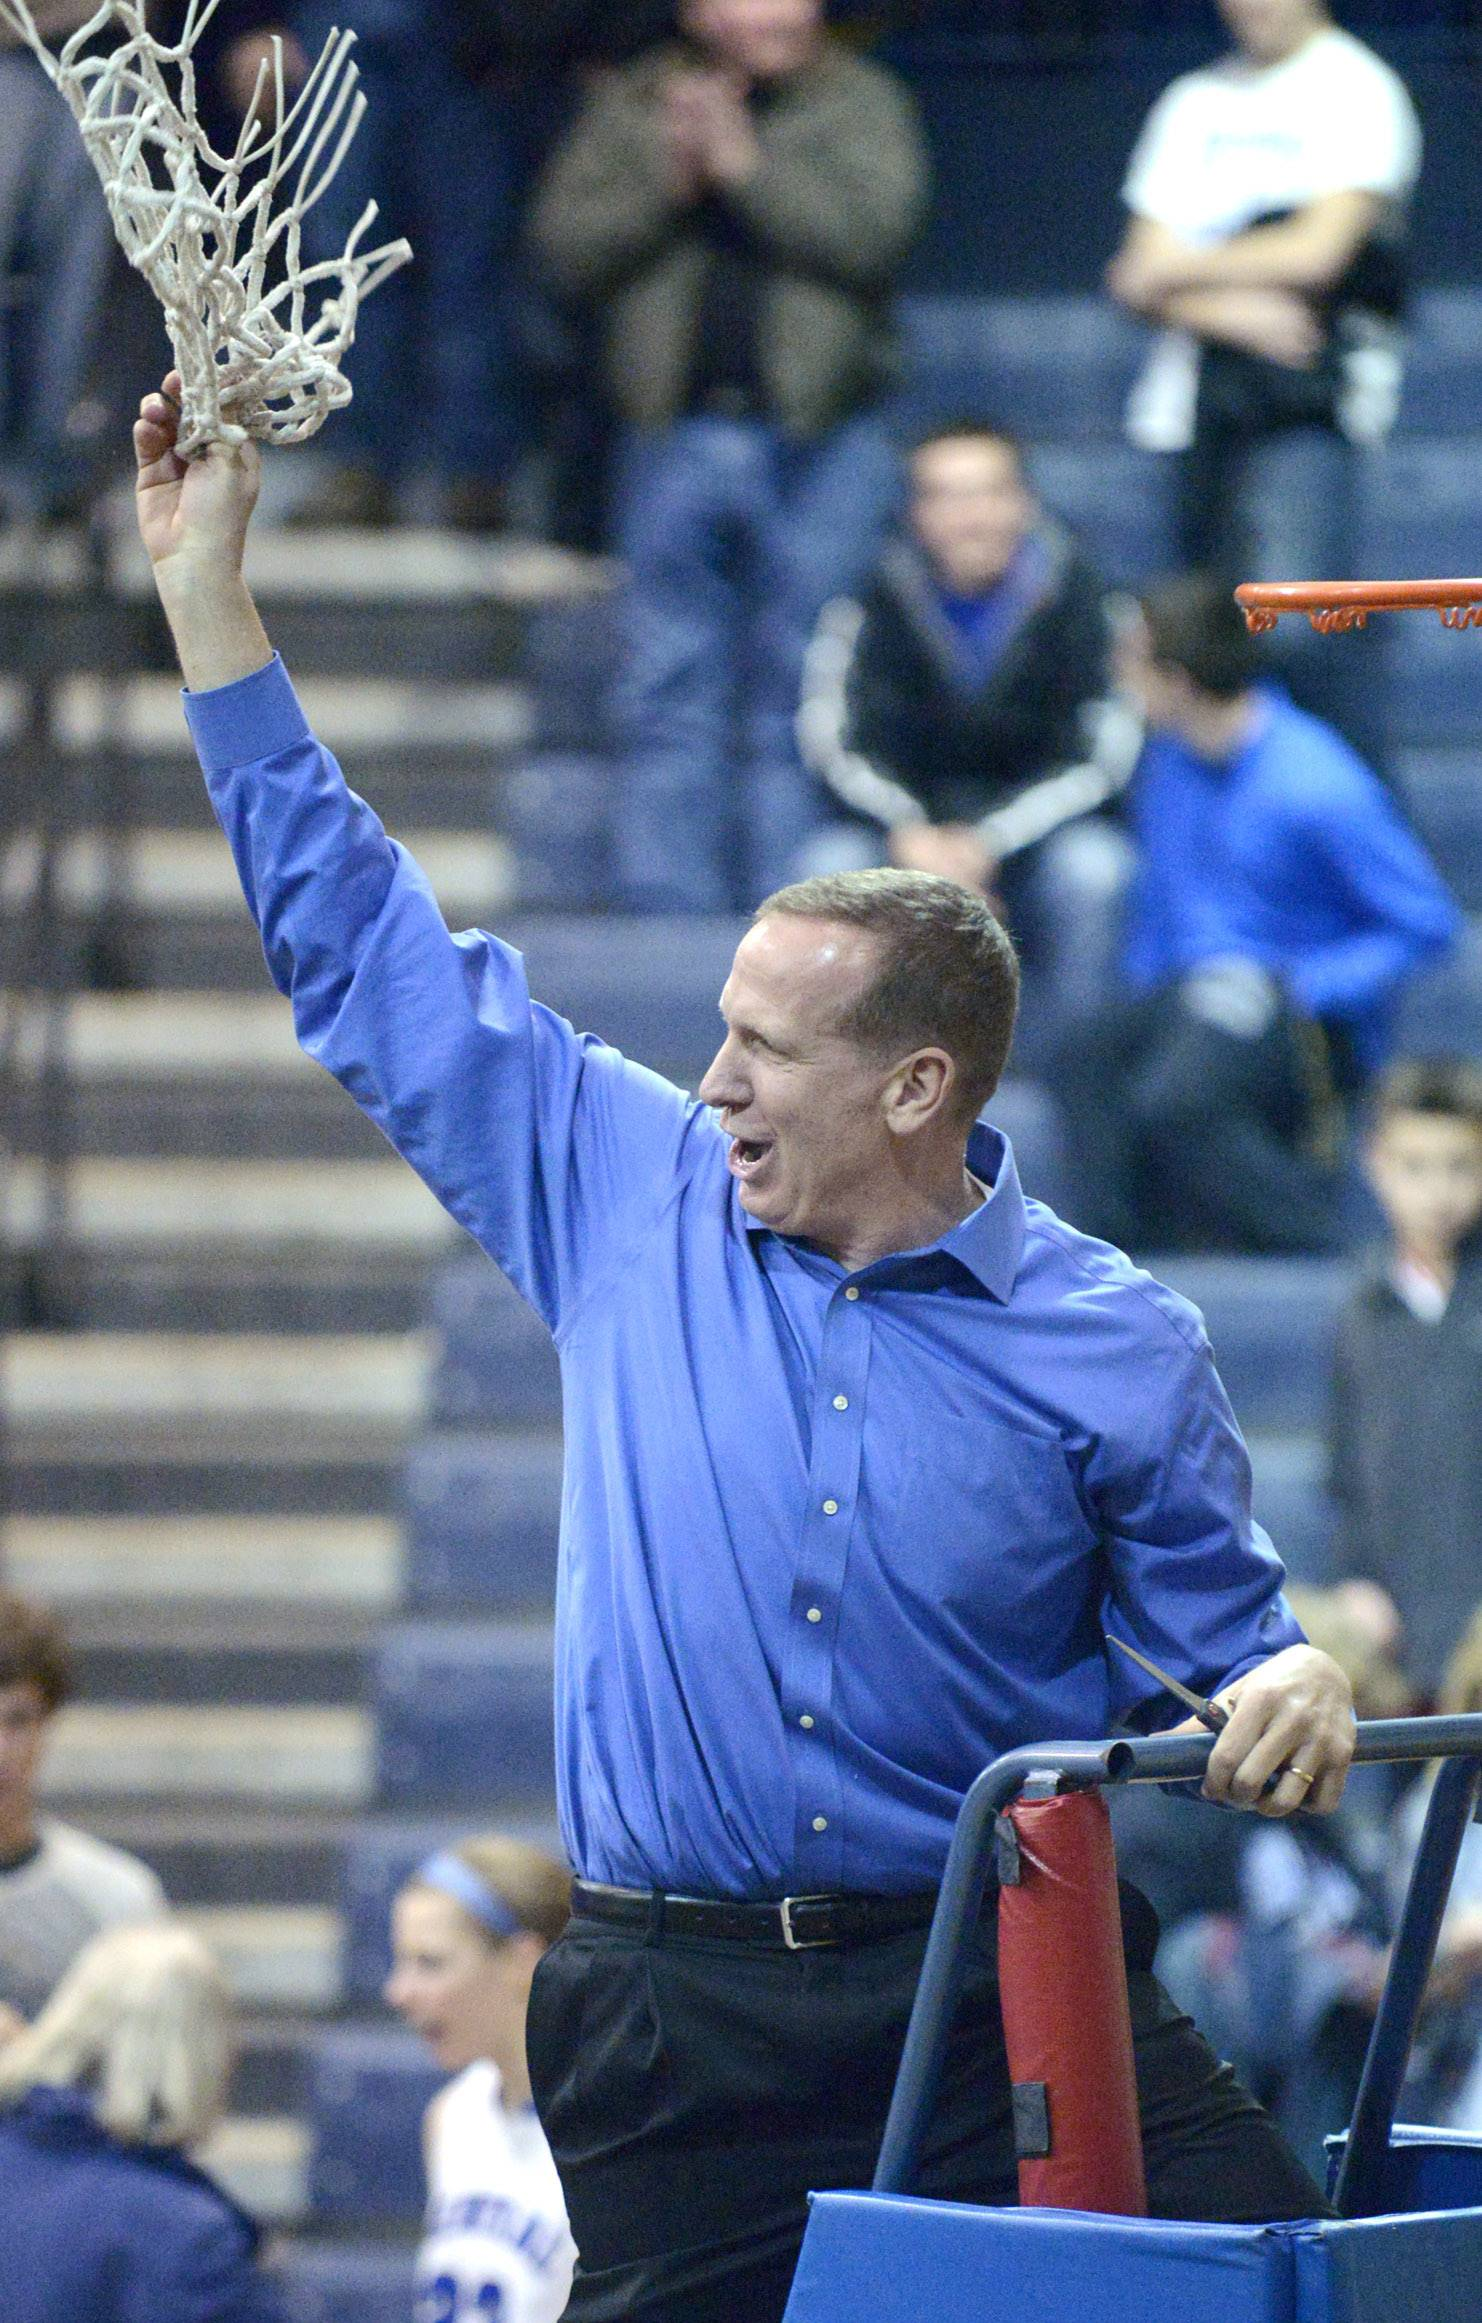 Burlington Central head coach Mark Smith twirls the hoop in the air before tossing it to his team after their victory over St. Edward in the Class 3A regional championship game on Saturday, February 22.